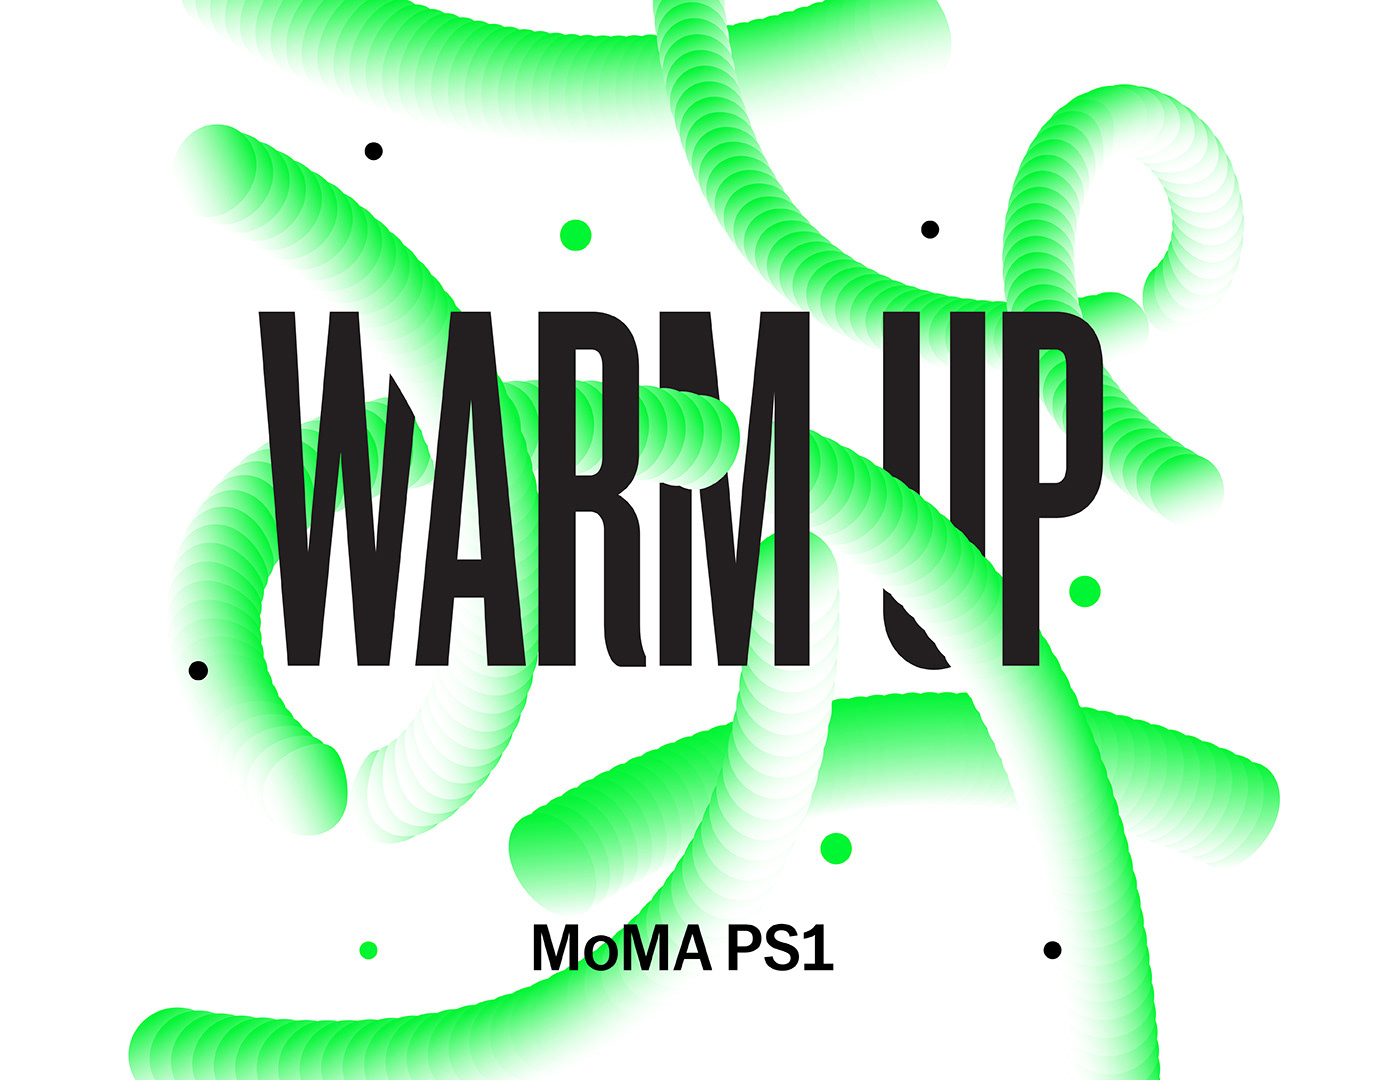 moma MoMa PS1 New York summer graphics typography   halftone Music Festival warm up poster